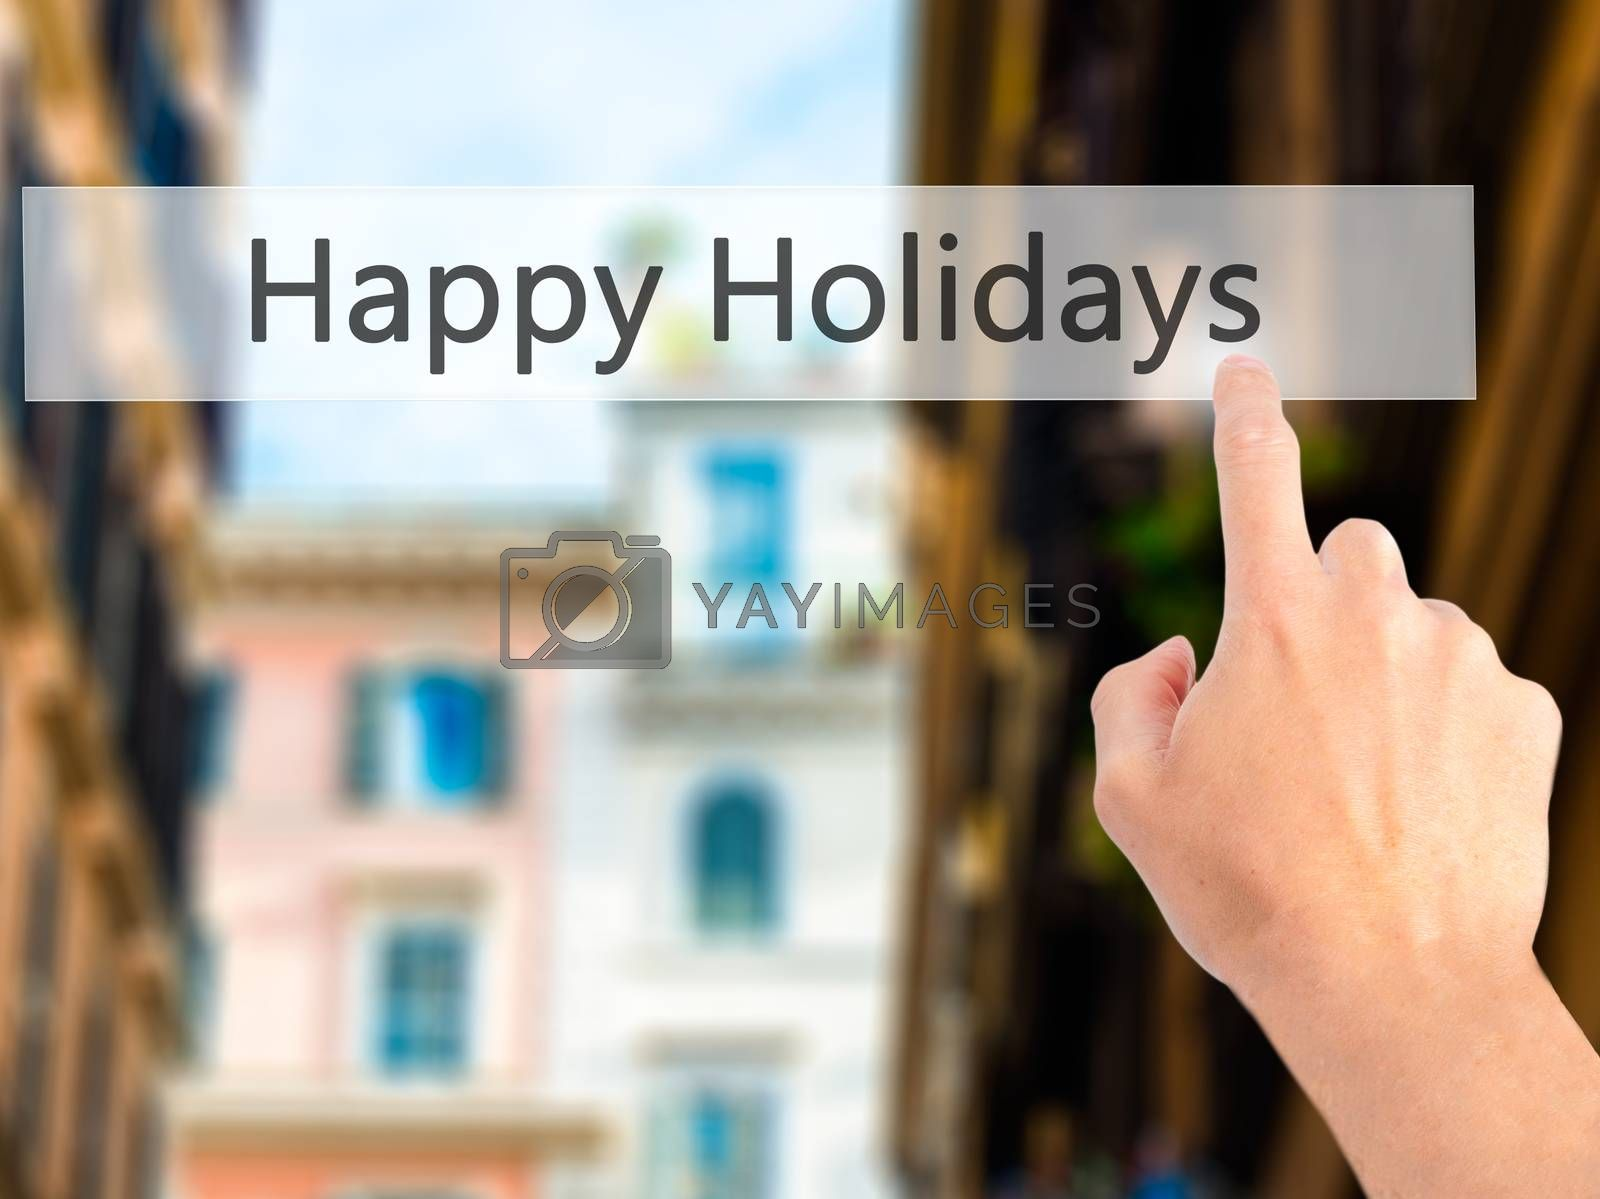 Happy Holidays - Hand pressing a button on blurred background co by jackald